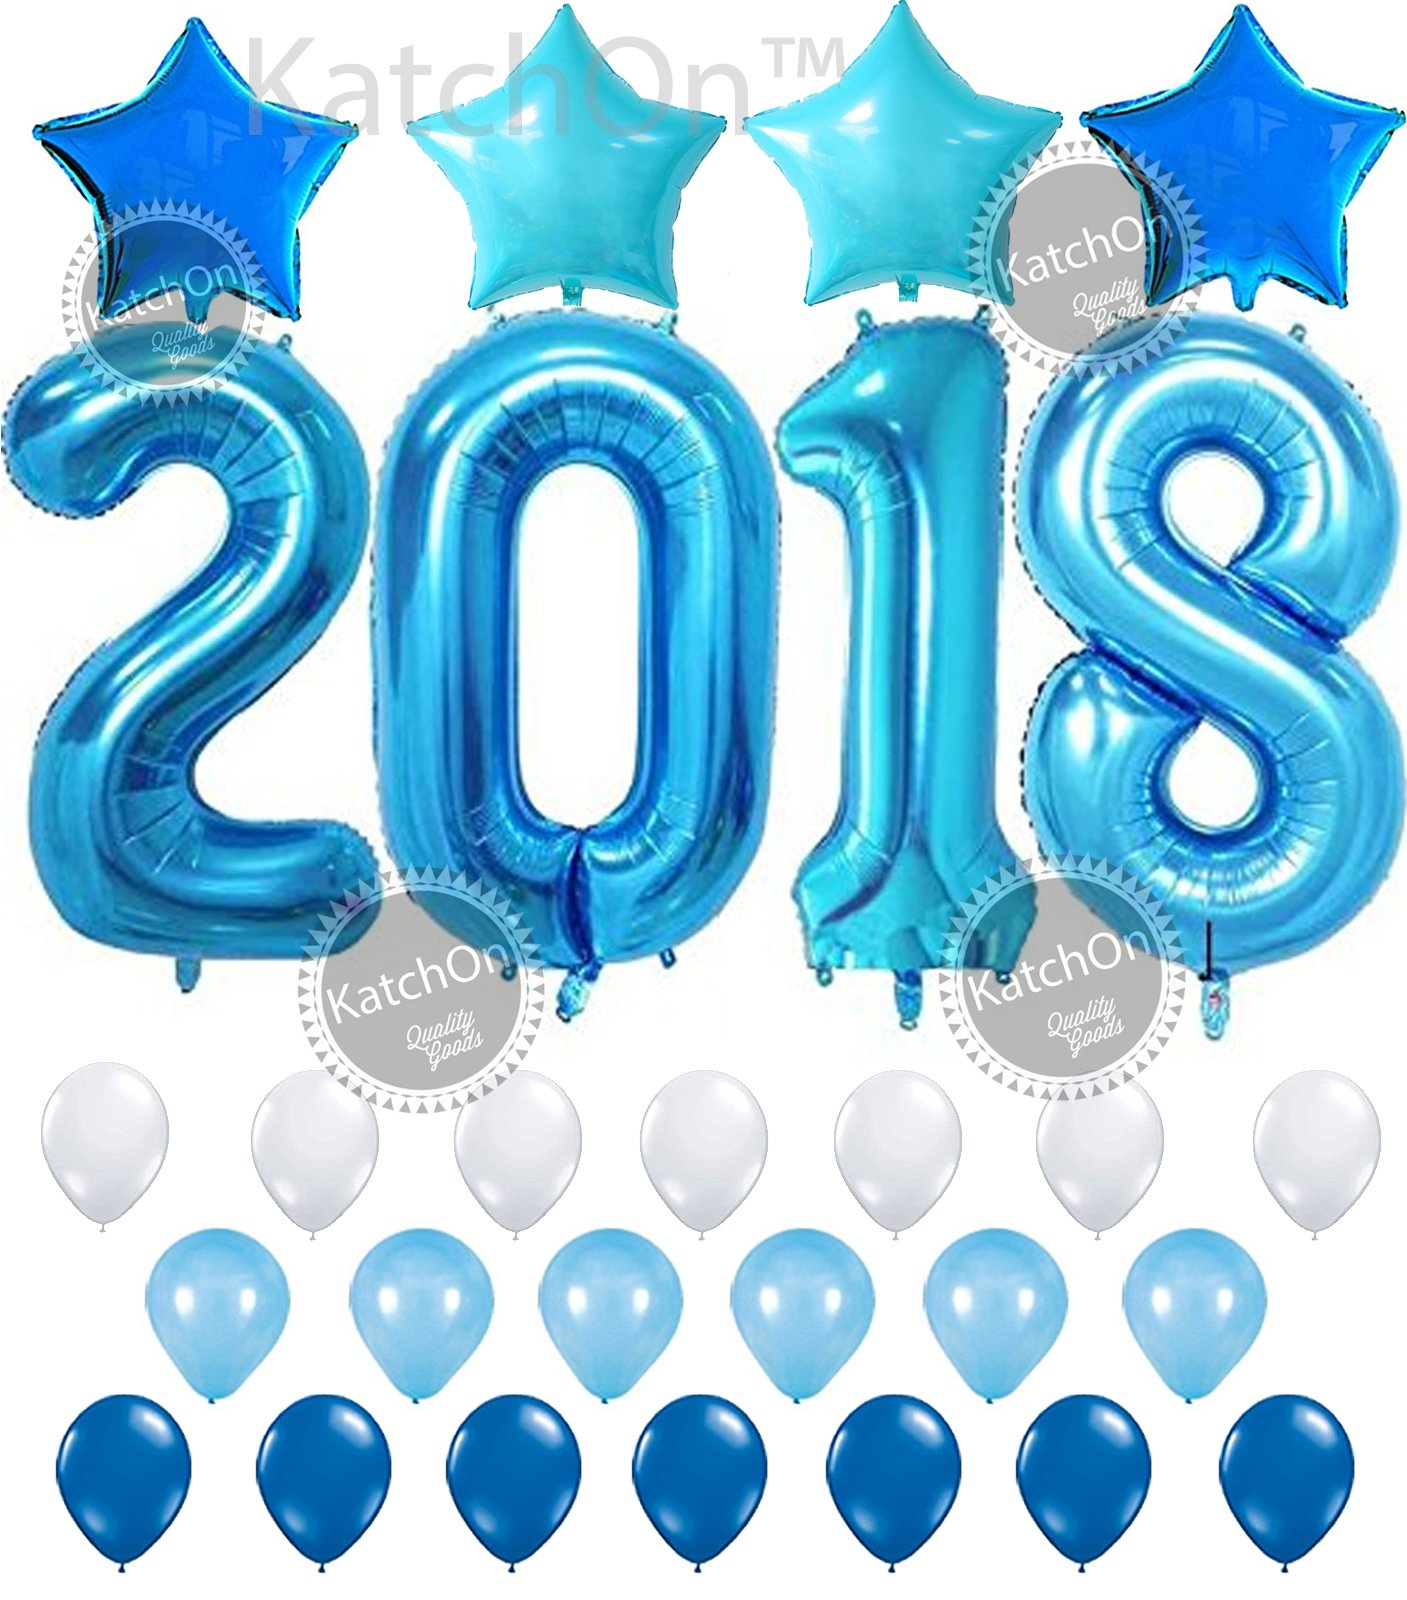 KATCHON 2018 Blue with Blue Stars Set 2018 Blue Balloons for New Years Eve and Graduations Party Supplies - Large, 2018 New Years Eve Party Supplies Decorations - Graduation Party Supplies